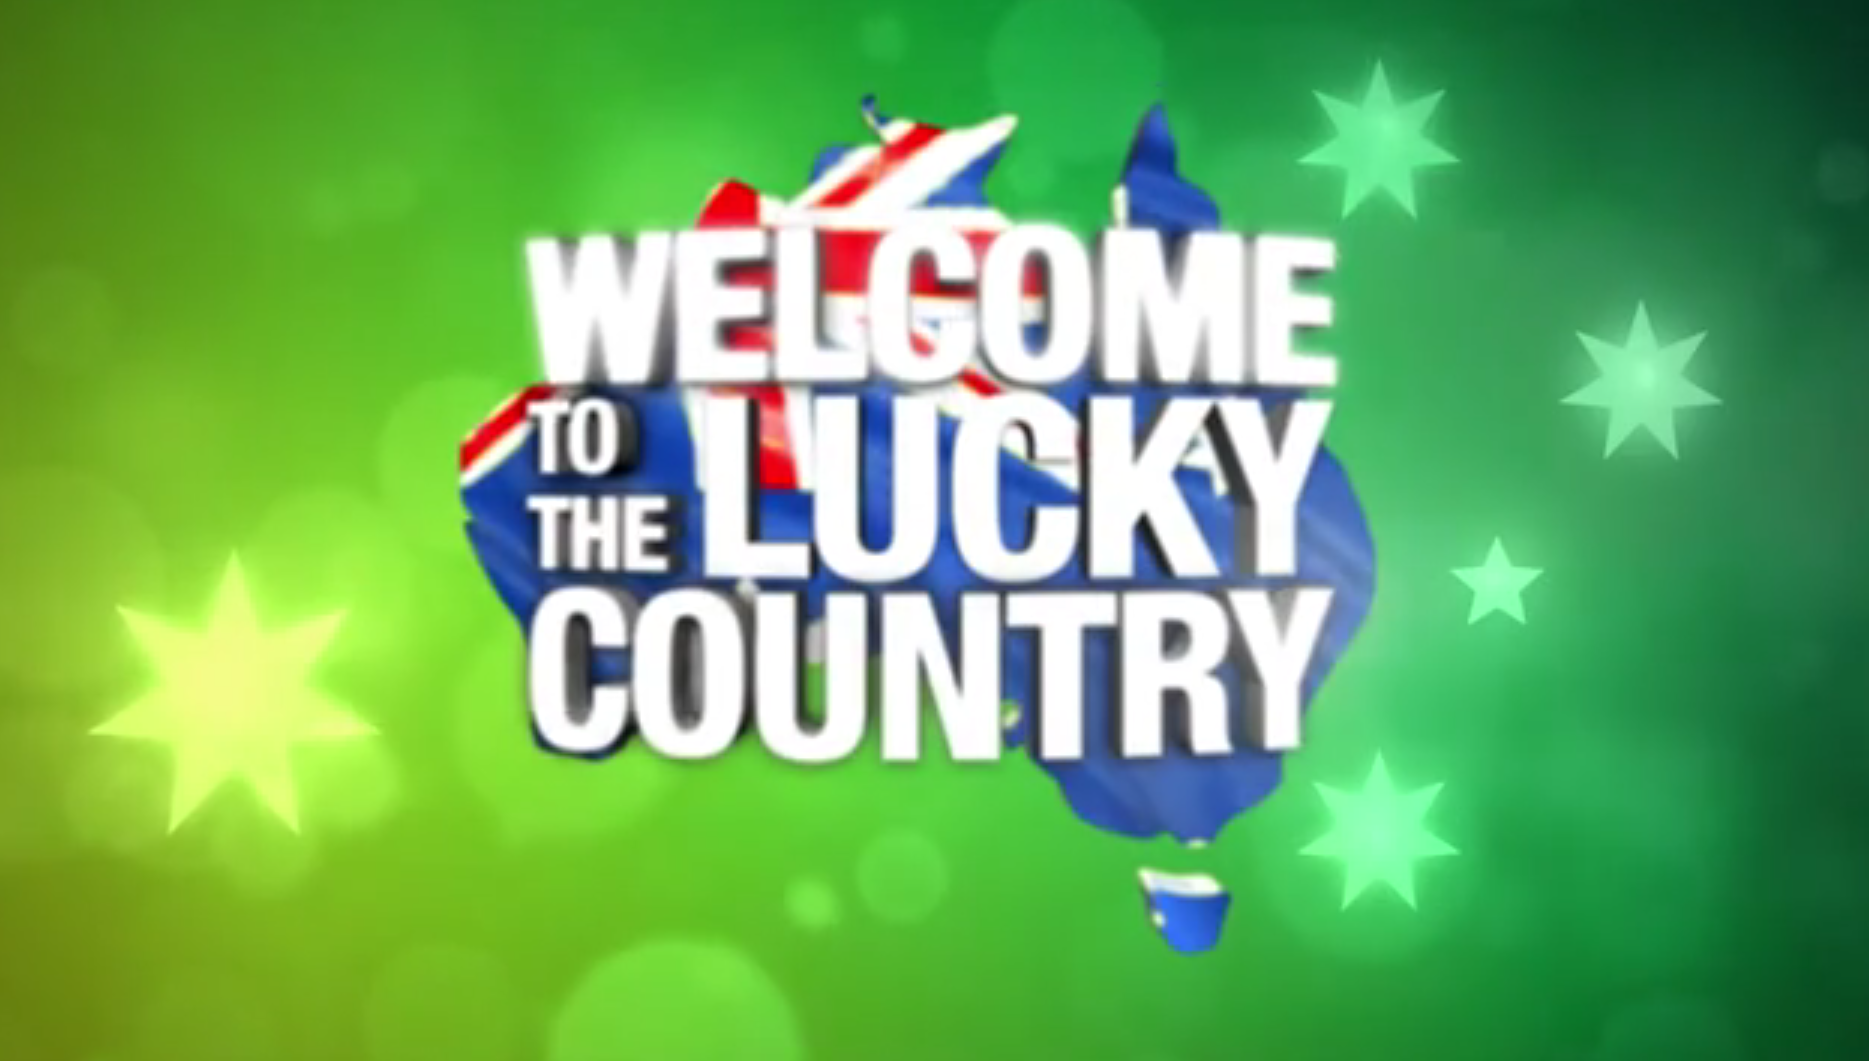 Welcome to the Lucky Country